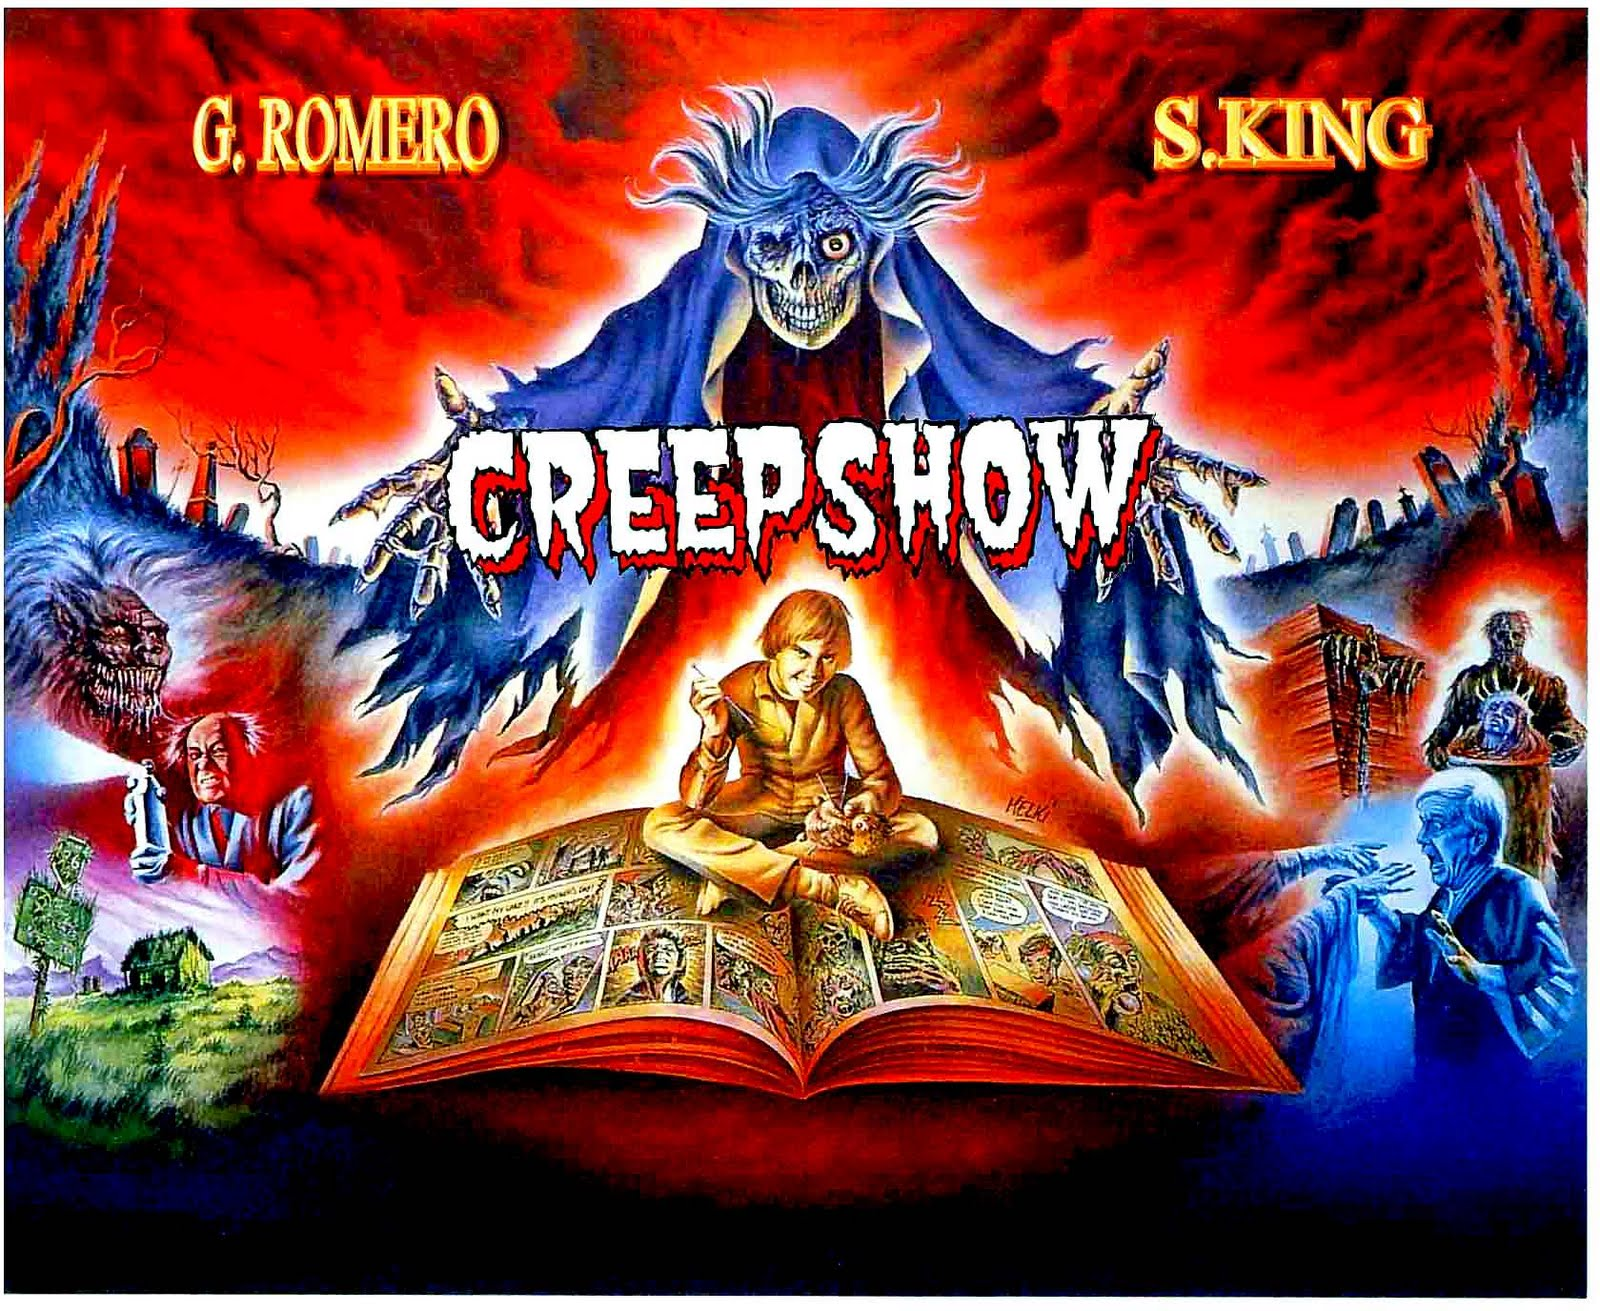 Stephen King's Creepshow Paperback Comic 1982 w/ Barcode George Romero